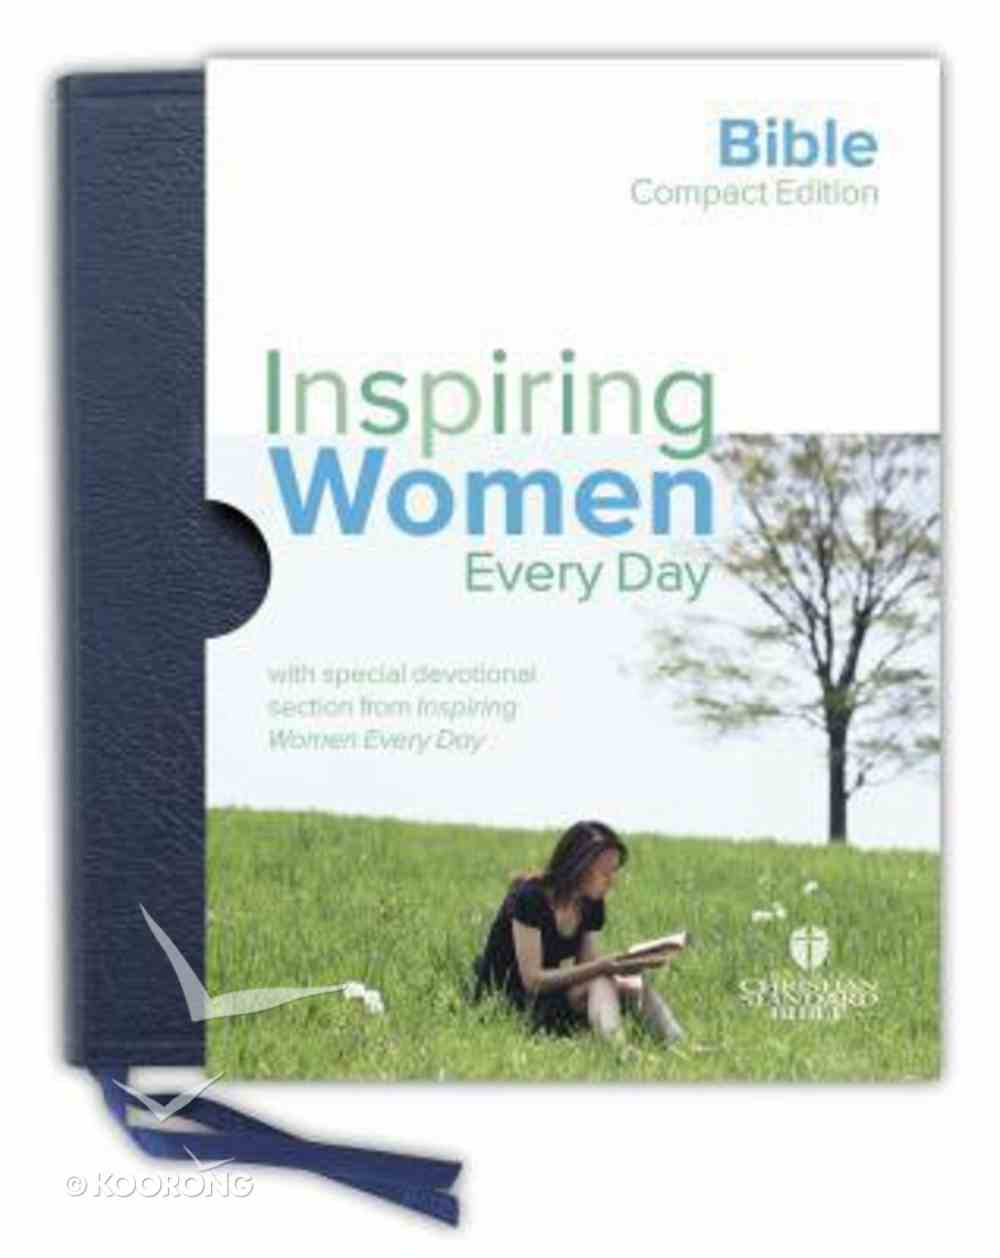 HCSB Inspiring Women Every Day Compact Blue Bonded Leather